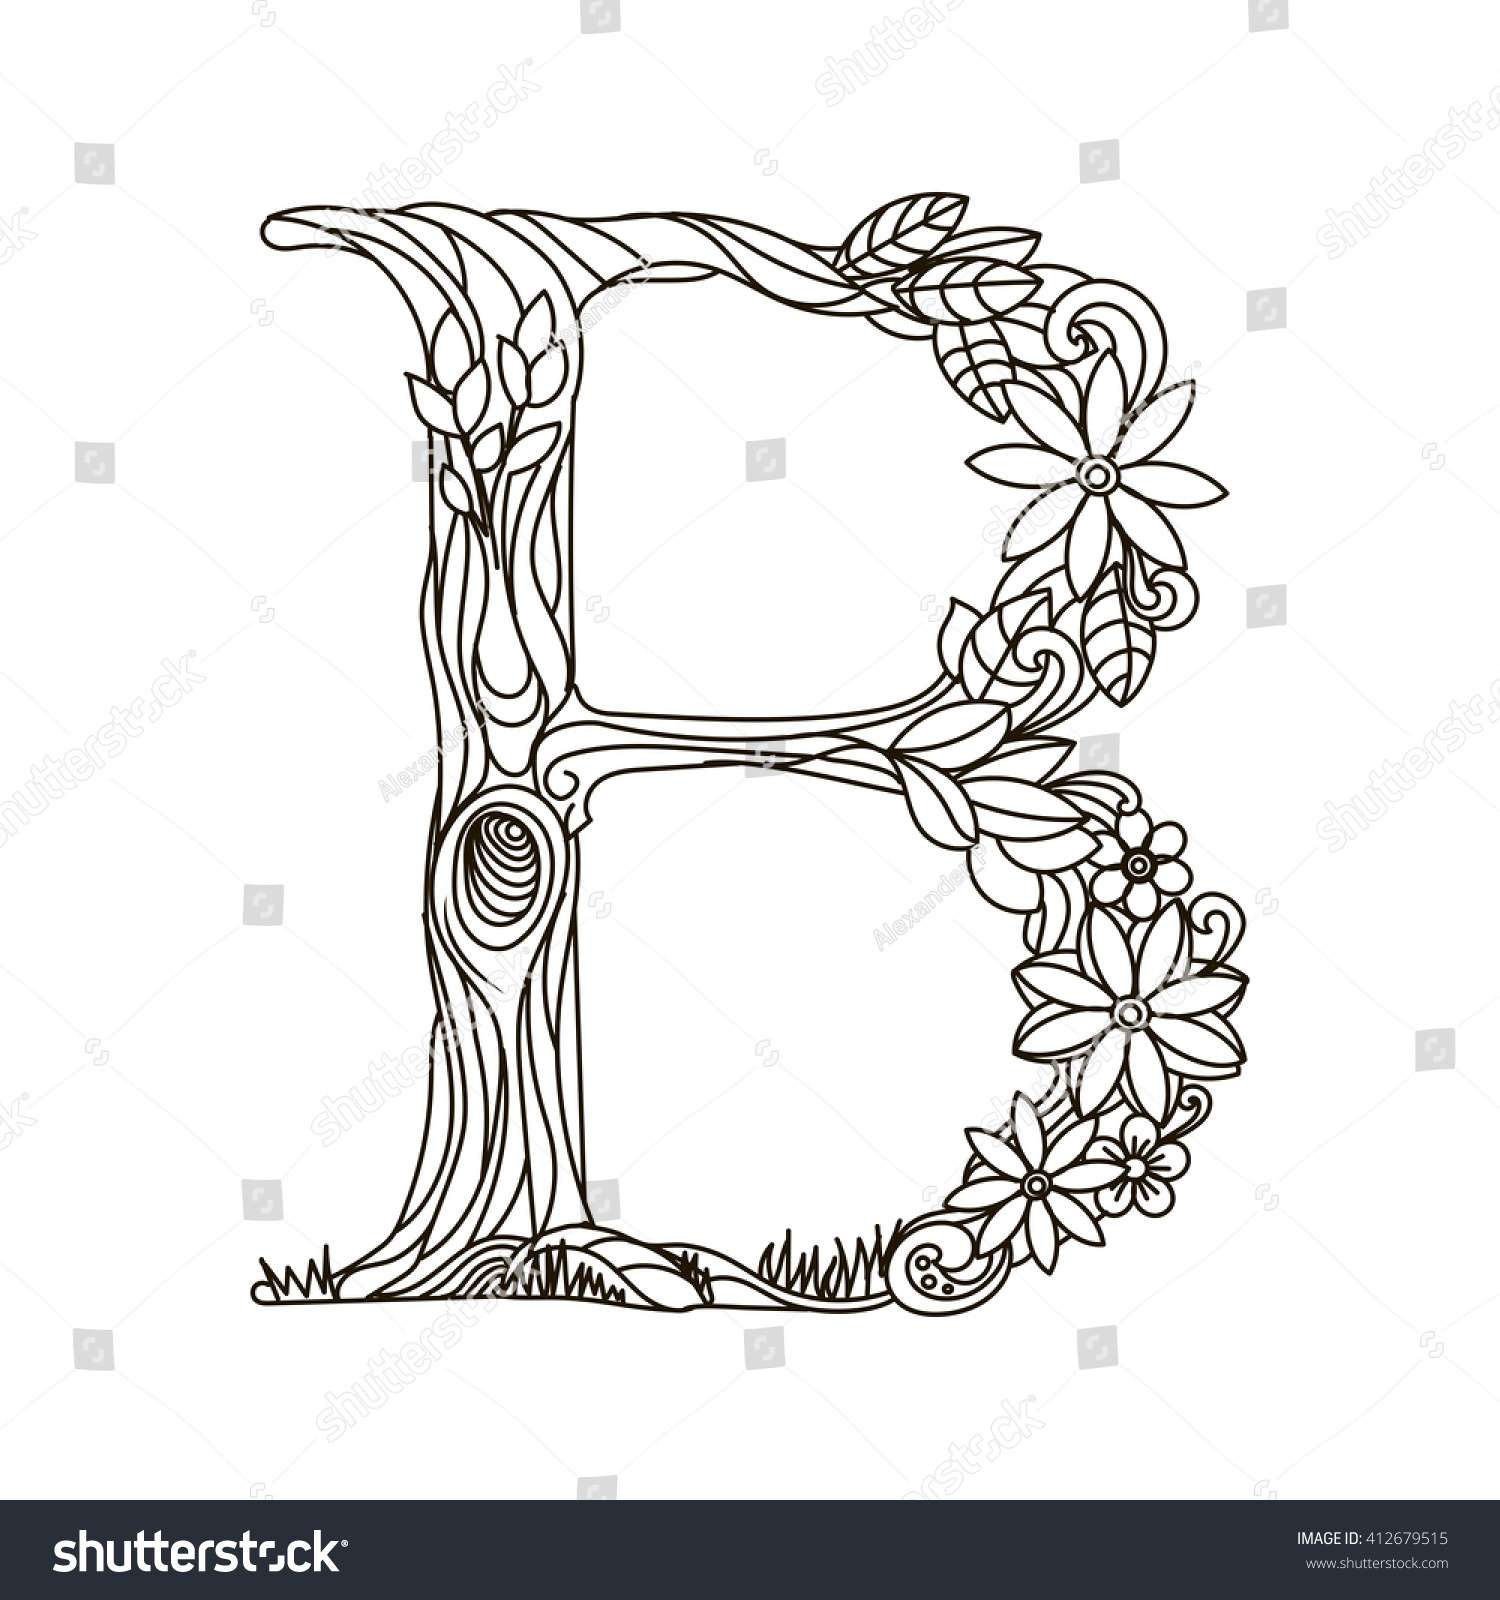 Flower alphabet coloring pages - Floral Alphabet Letter Coloring Book For Adults Raster Illustration Anti Stress Coloring For Adult